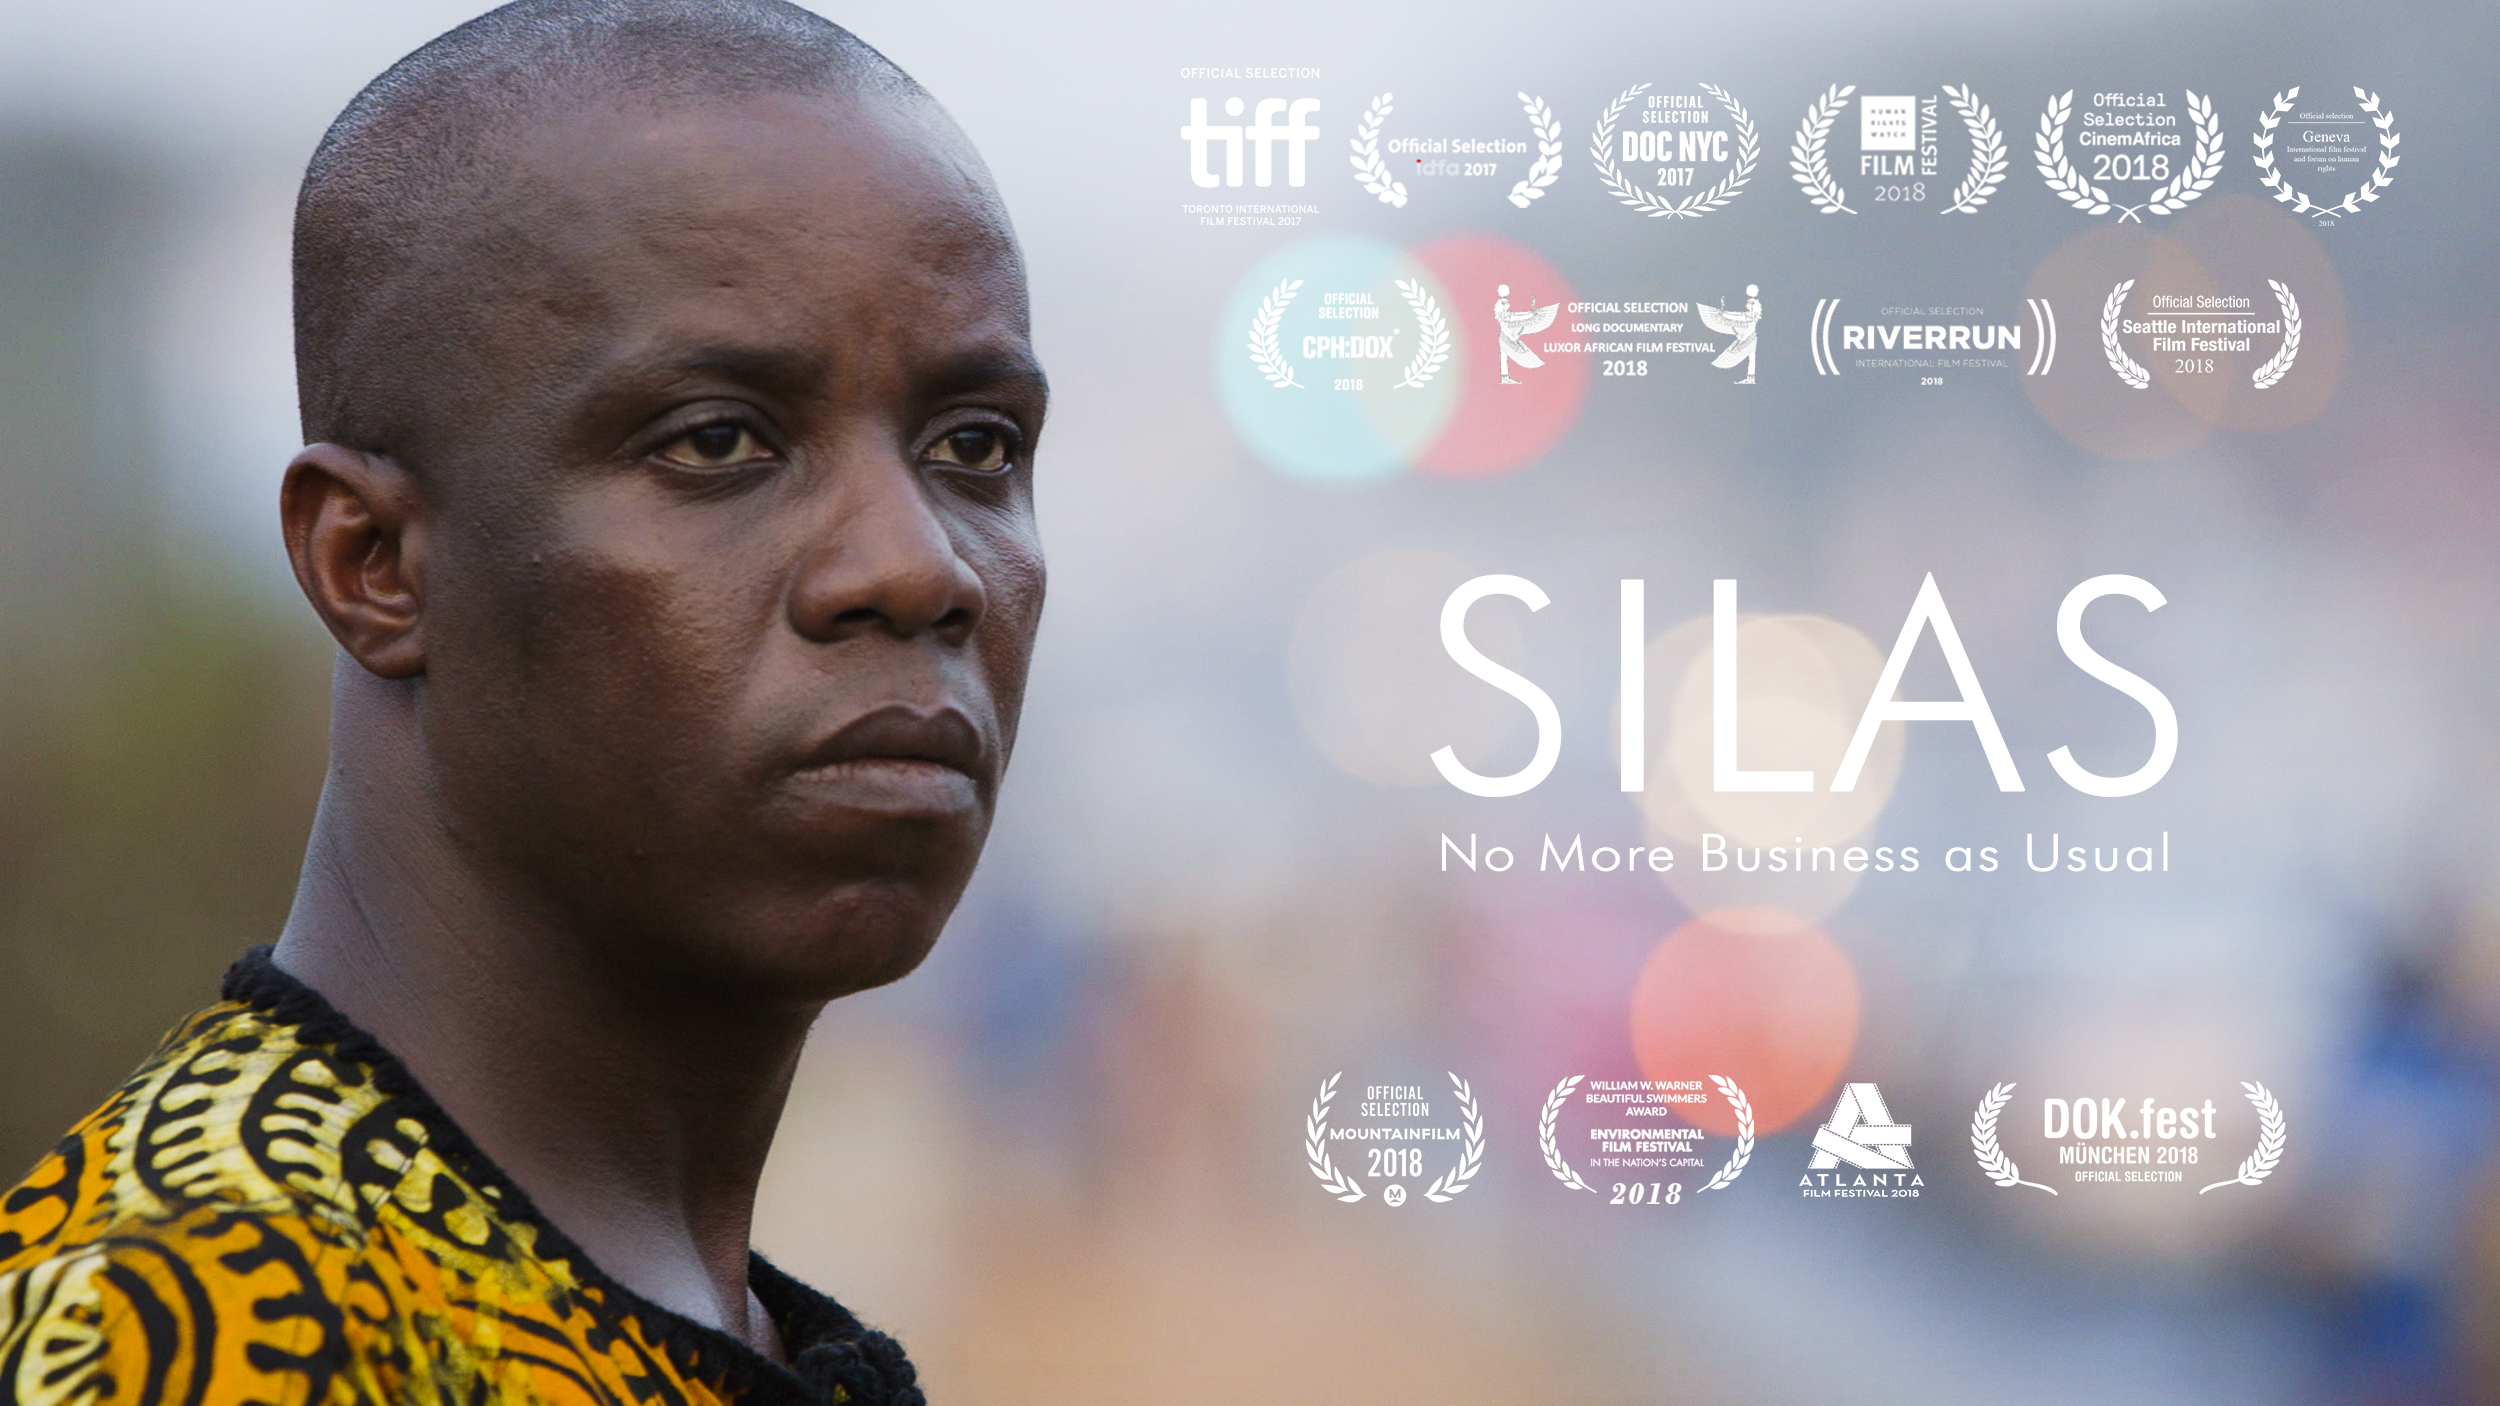 Silas Website Image.png